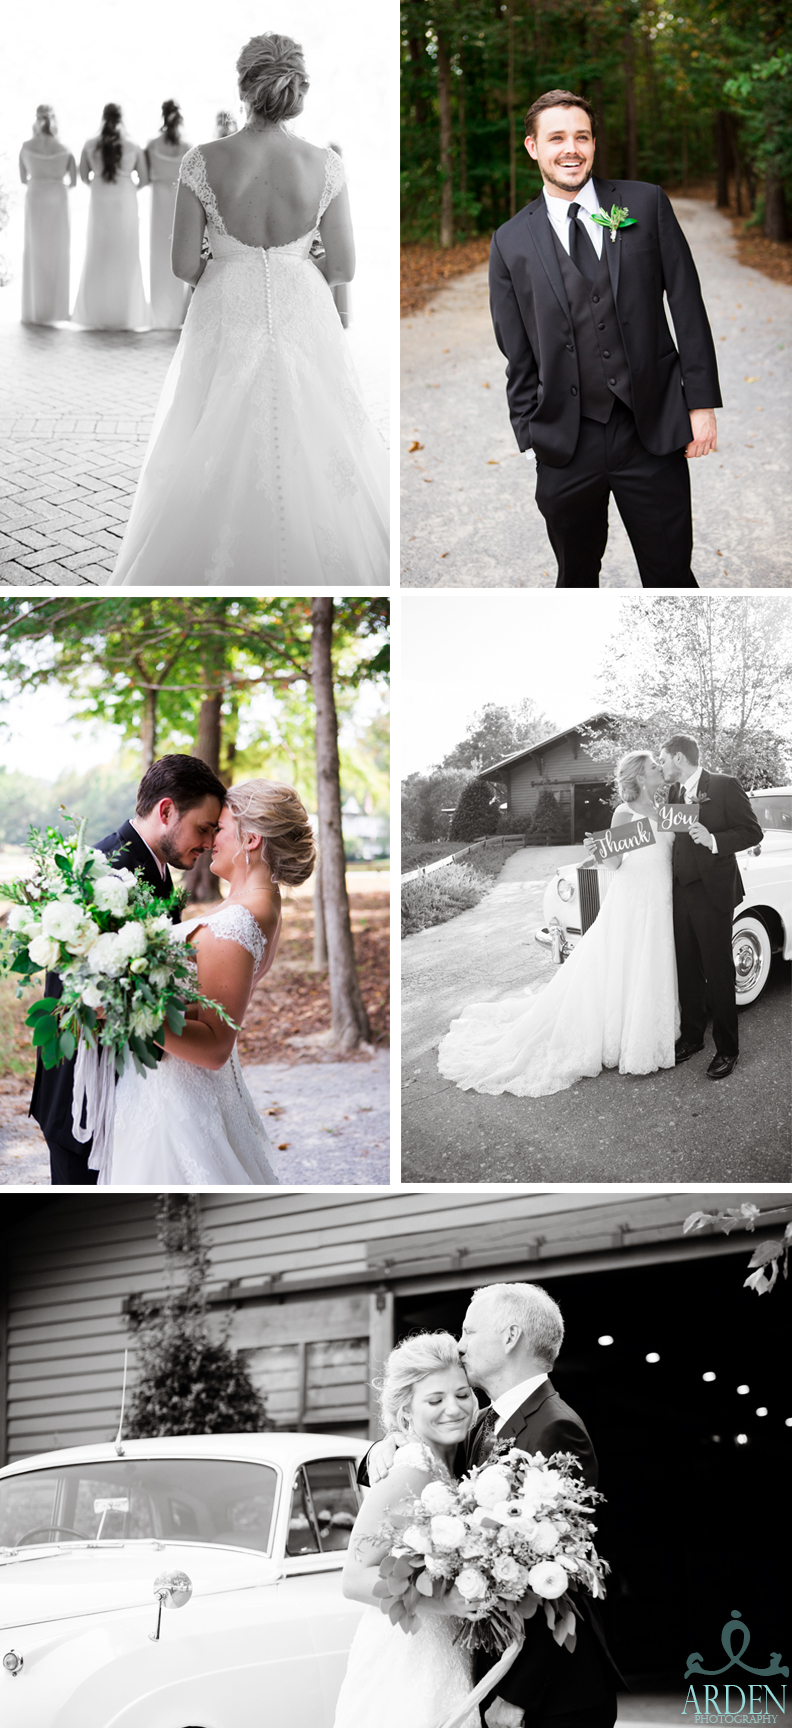 First looks for loved ones: friends, family, and groom.